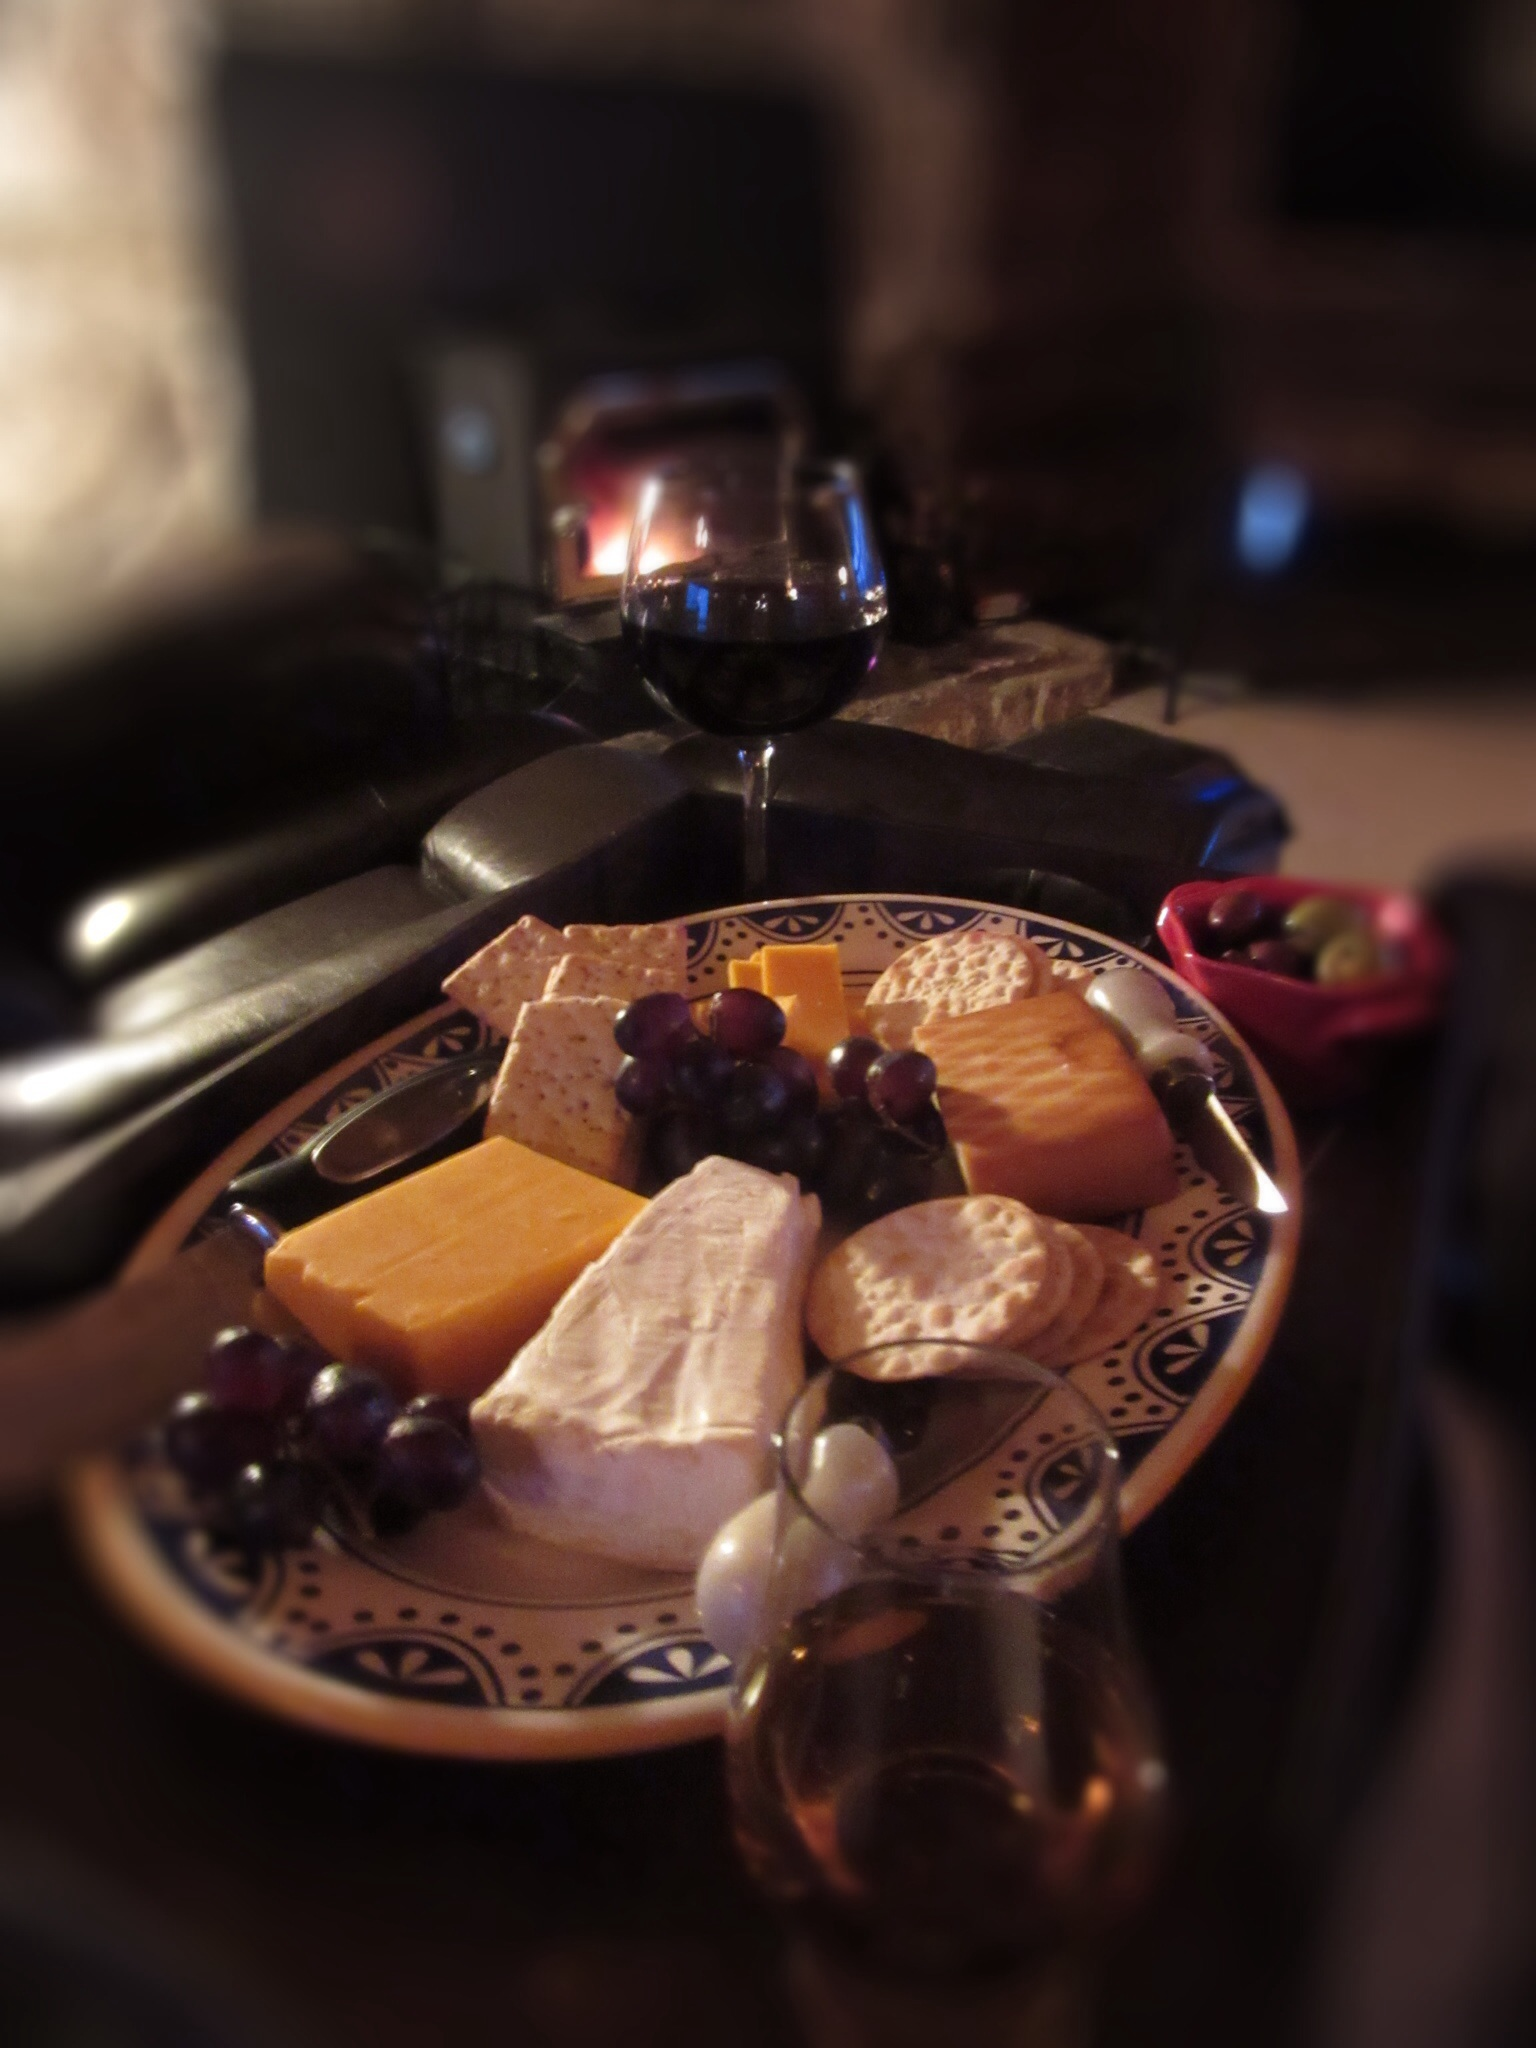 Simple Pleasures: Cheese Plate by the Fire